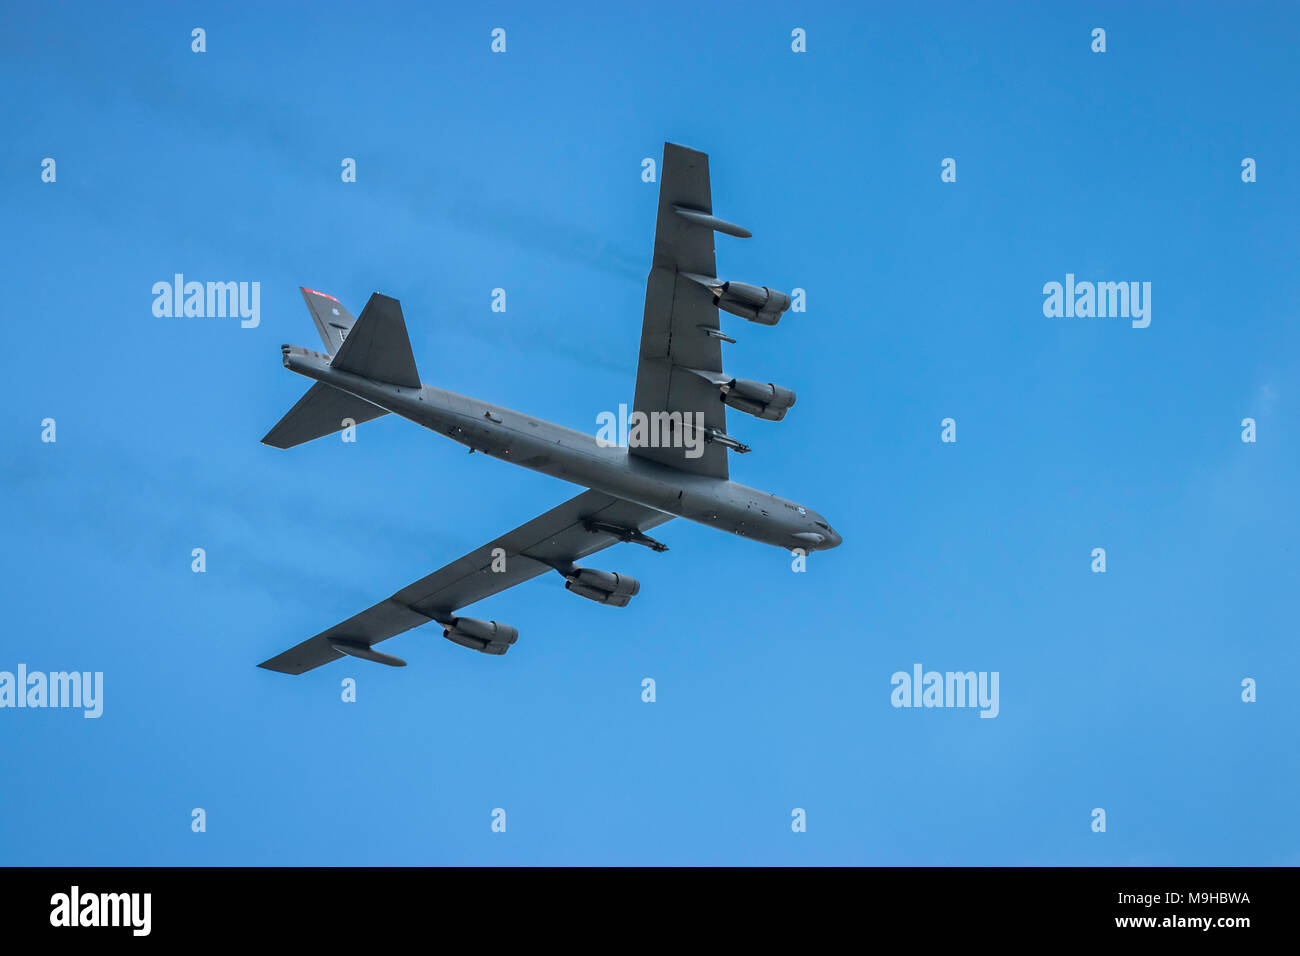 The Mighty Buff Boeing B-52 Stratofortress bomber in flight at the 2017 Airshow in Duluth, Minnesota, USA. Stock Photo